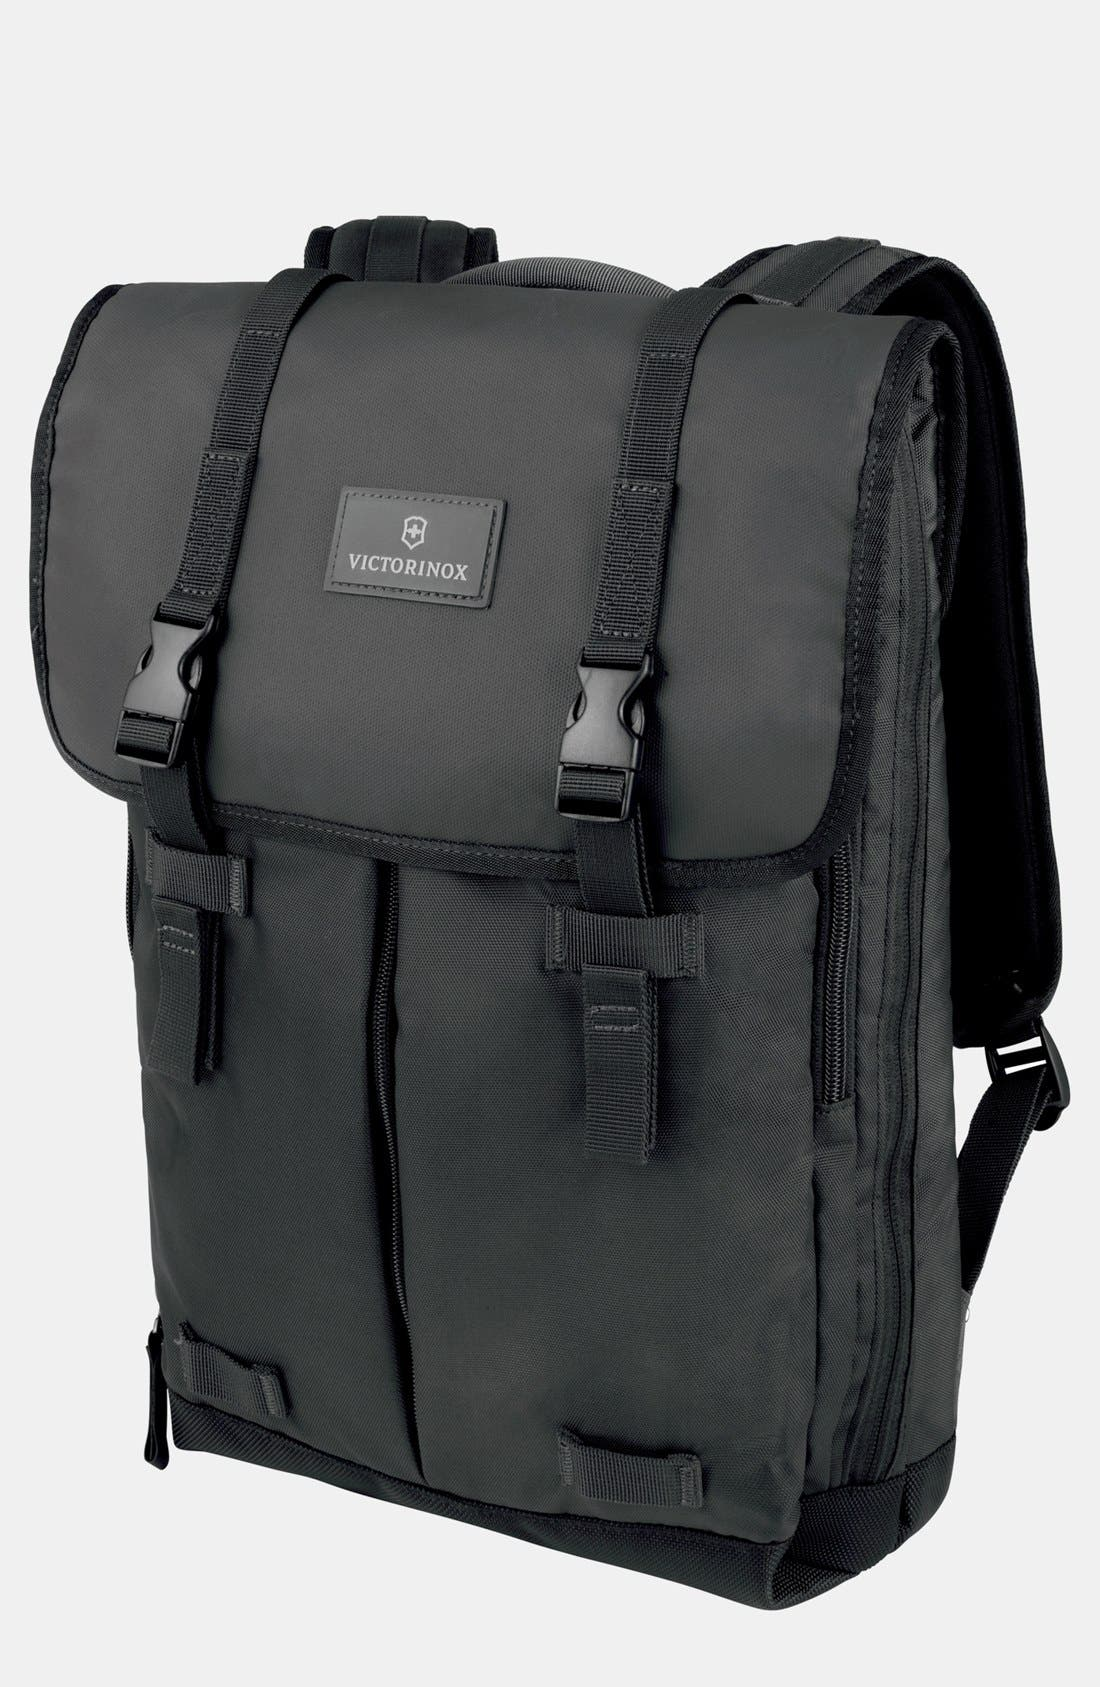 Victorinox Swiss Army Altmont Backpack - Black